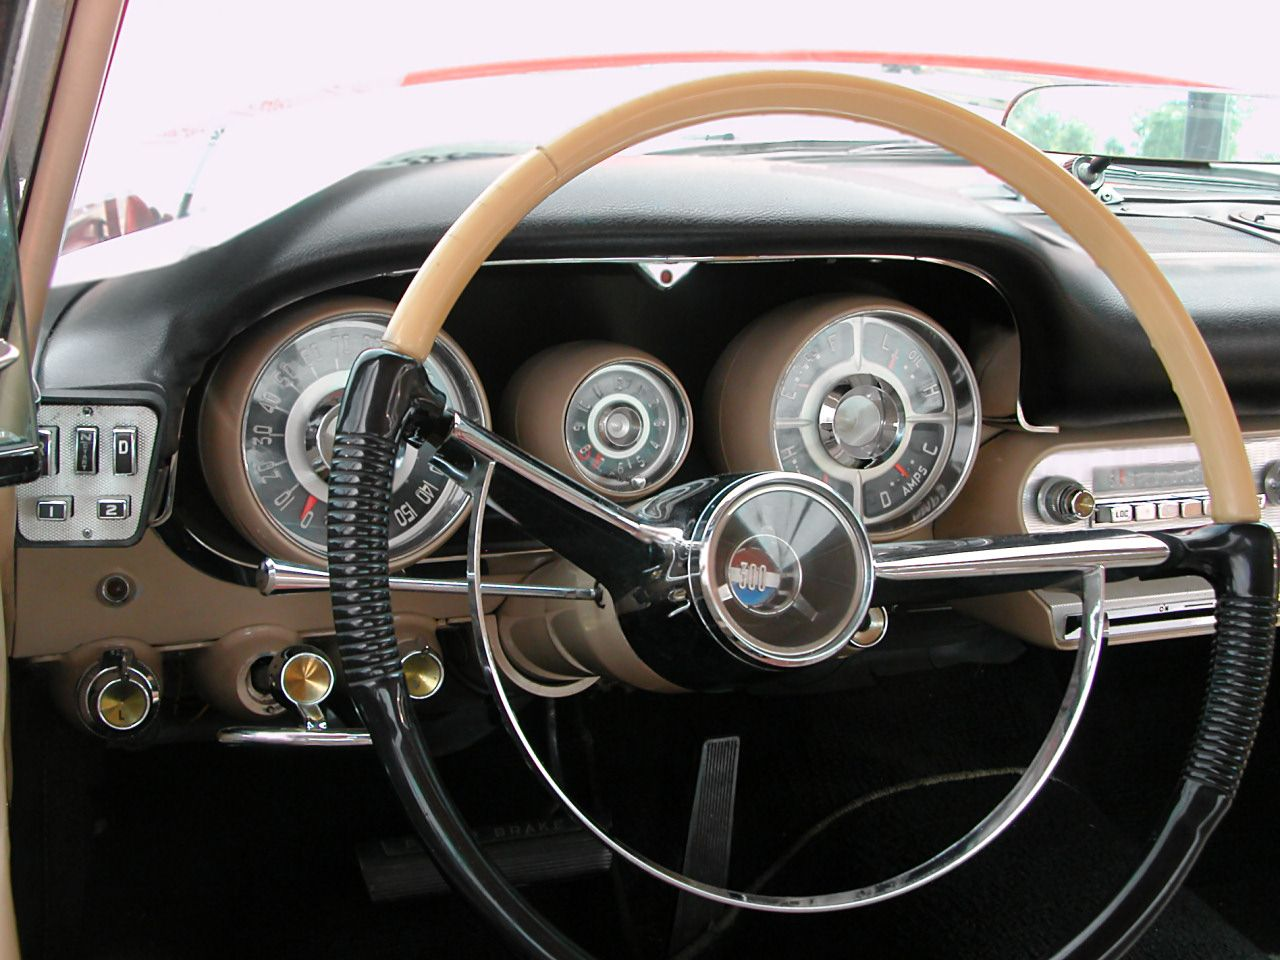 1956 chrysler imperial interior images - Dashboard Of 1958 Google Search